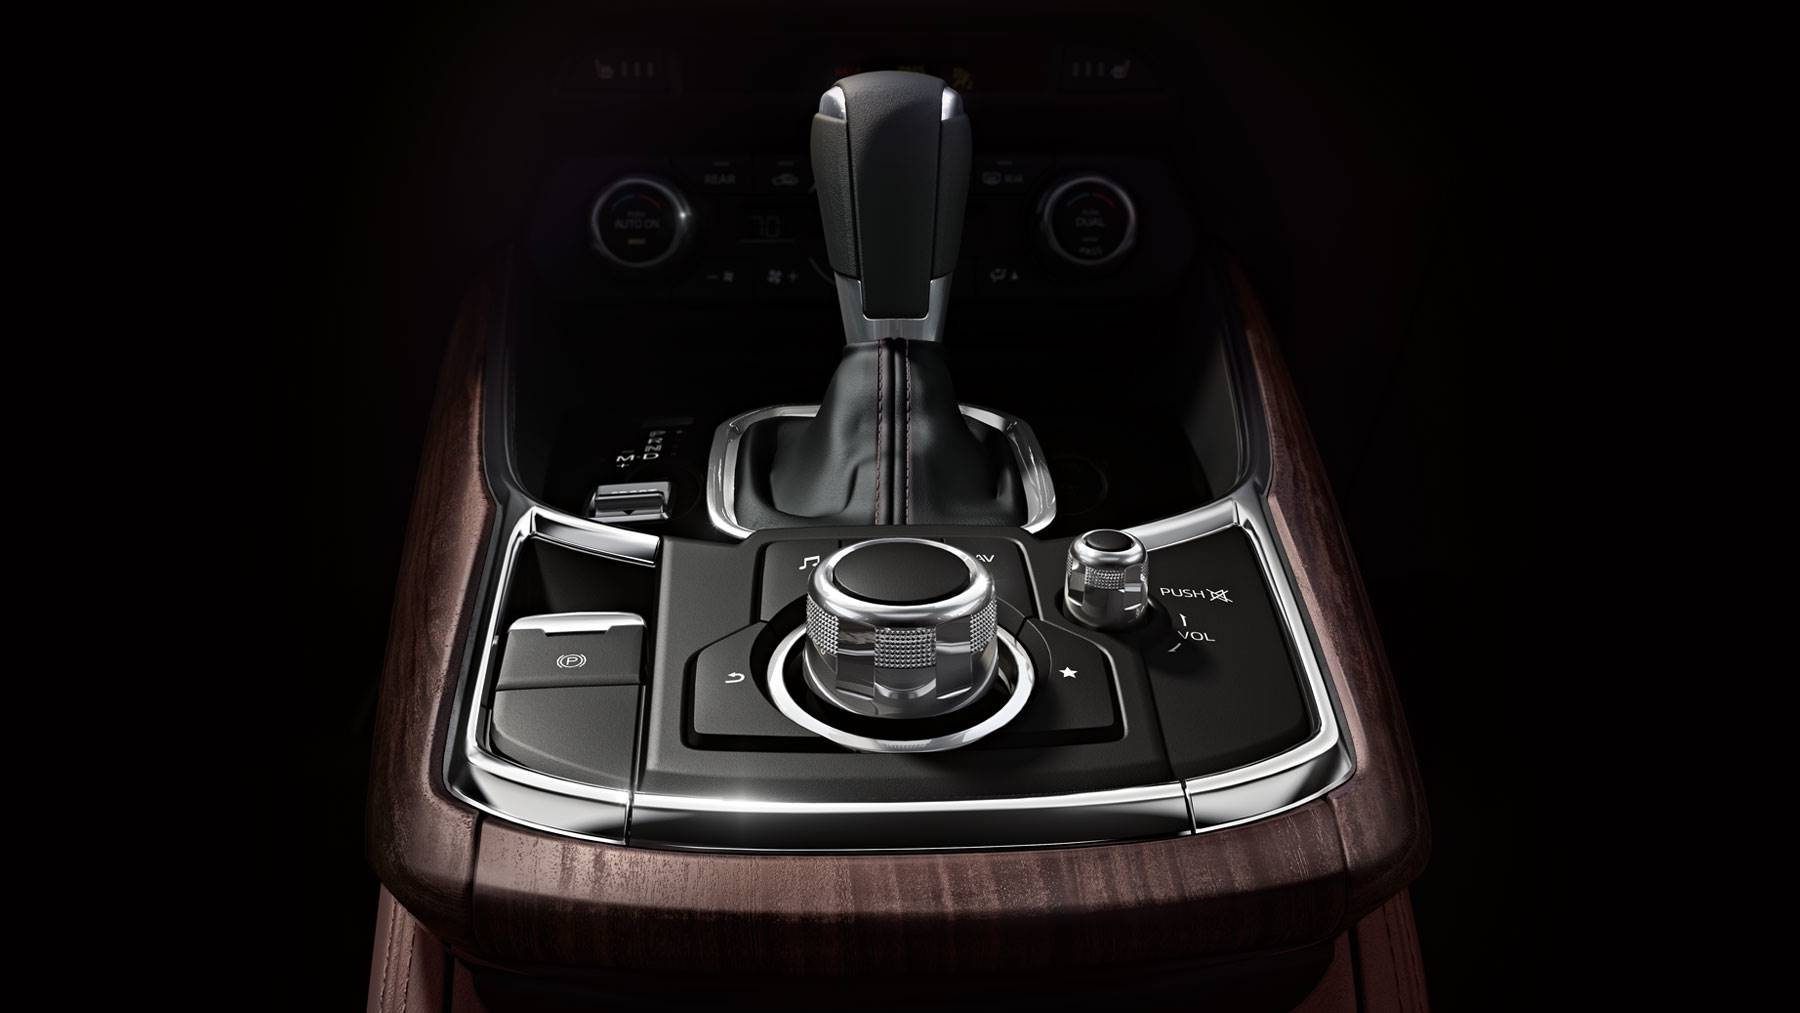 Take Charge with the CX-9